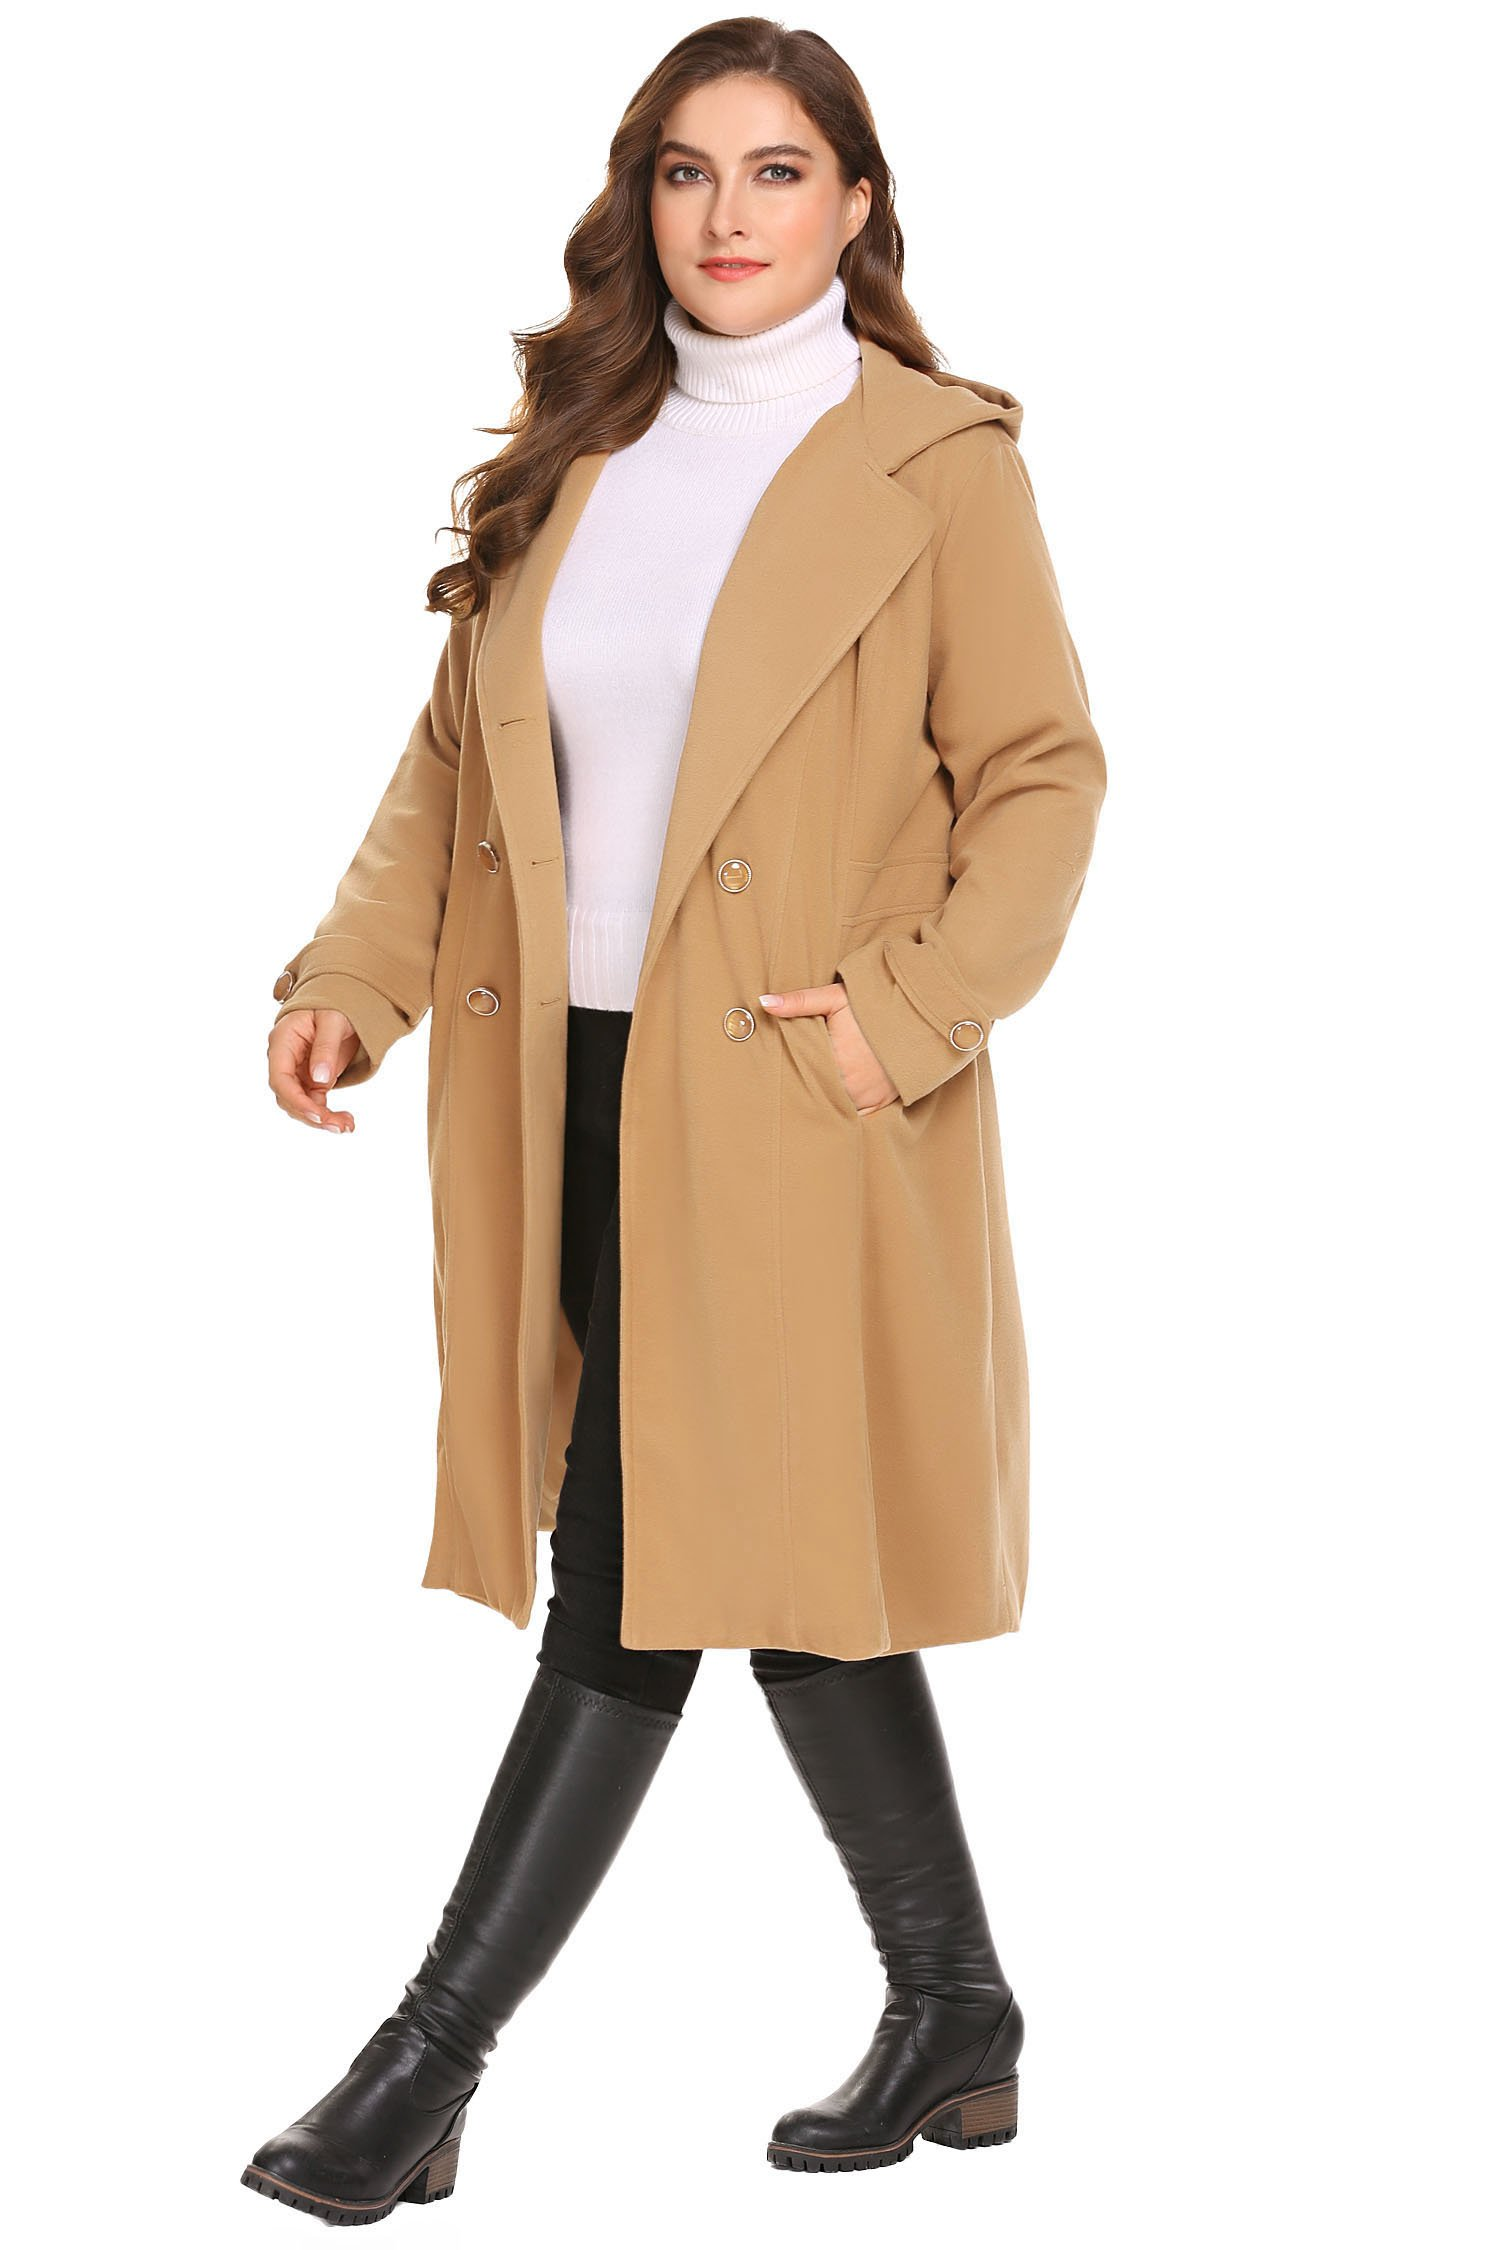 Zeagoo Women Plus Size Double Breasted Wool Elegant Long Lined Lightweight Trench Coat (16W-24W) by Zeagoo (Image #3)